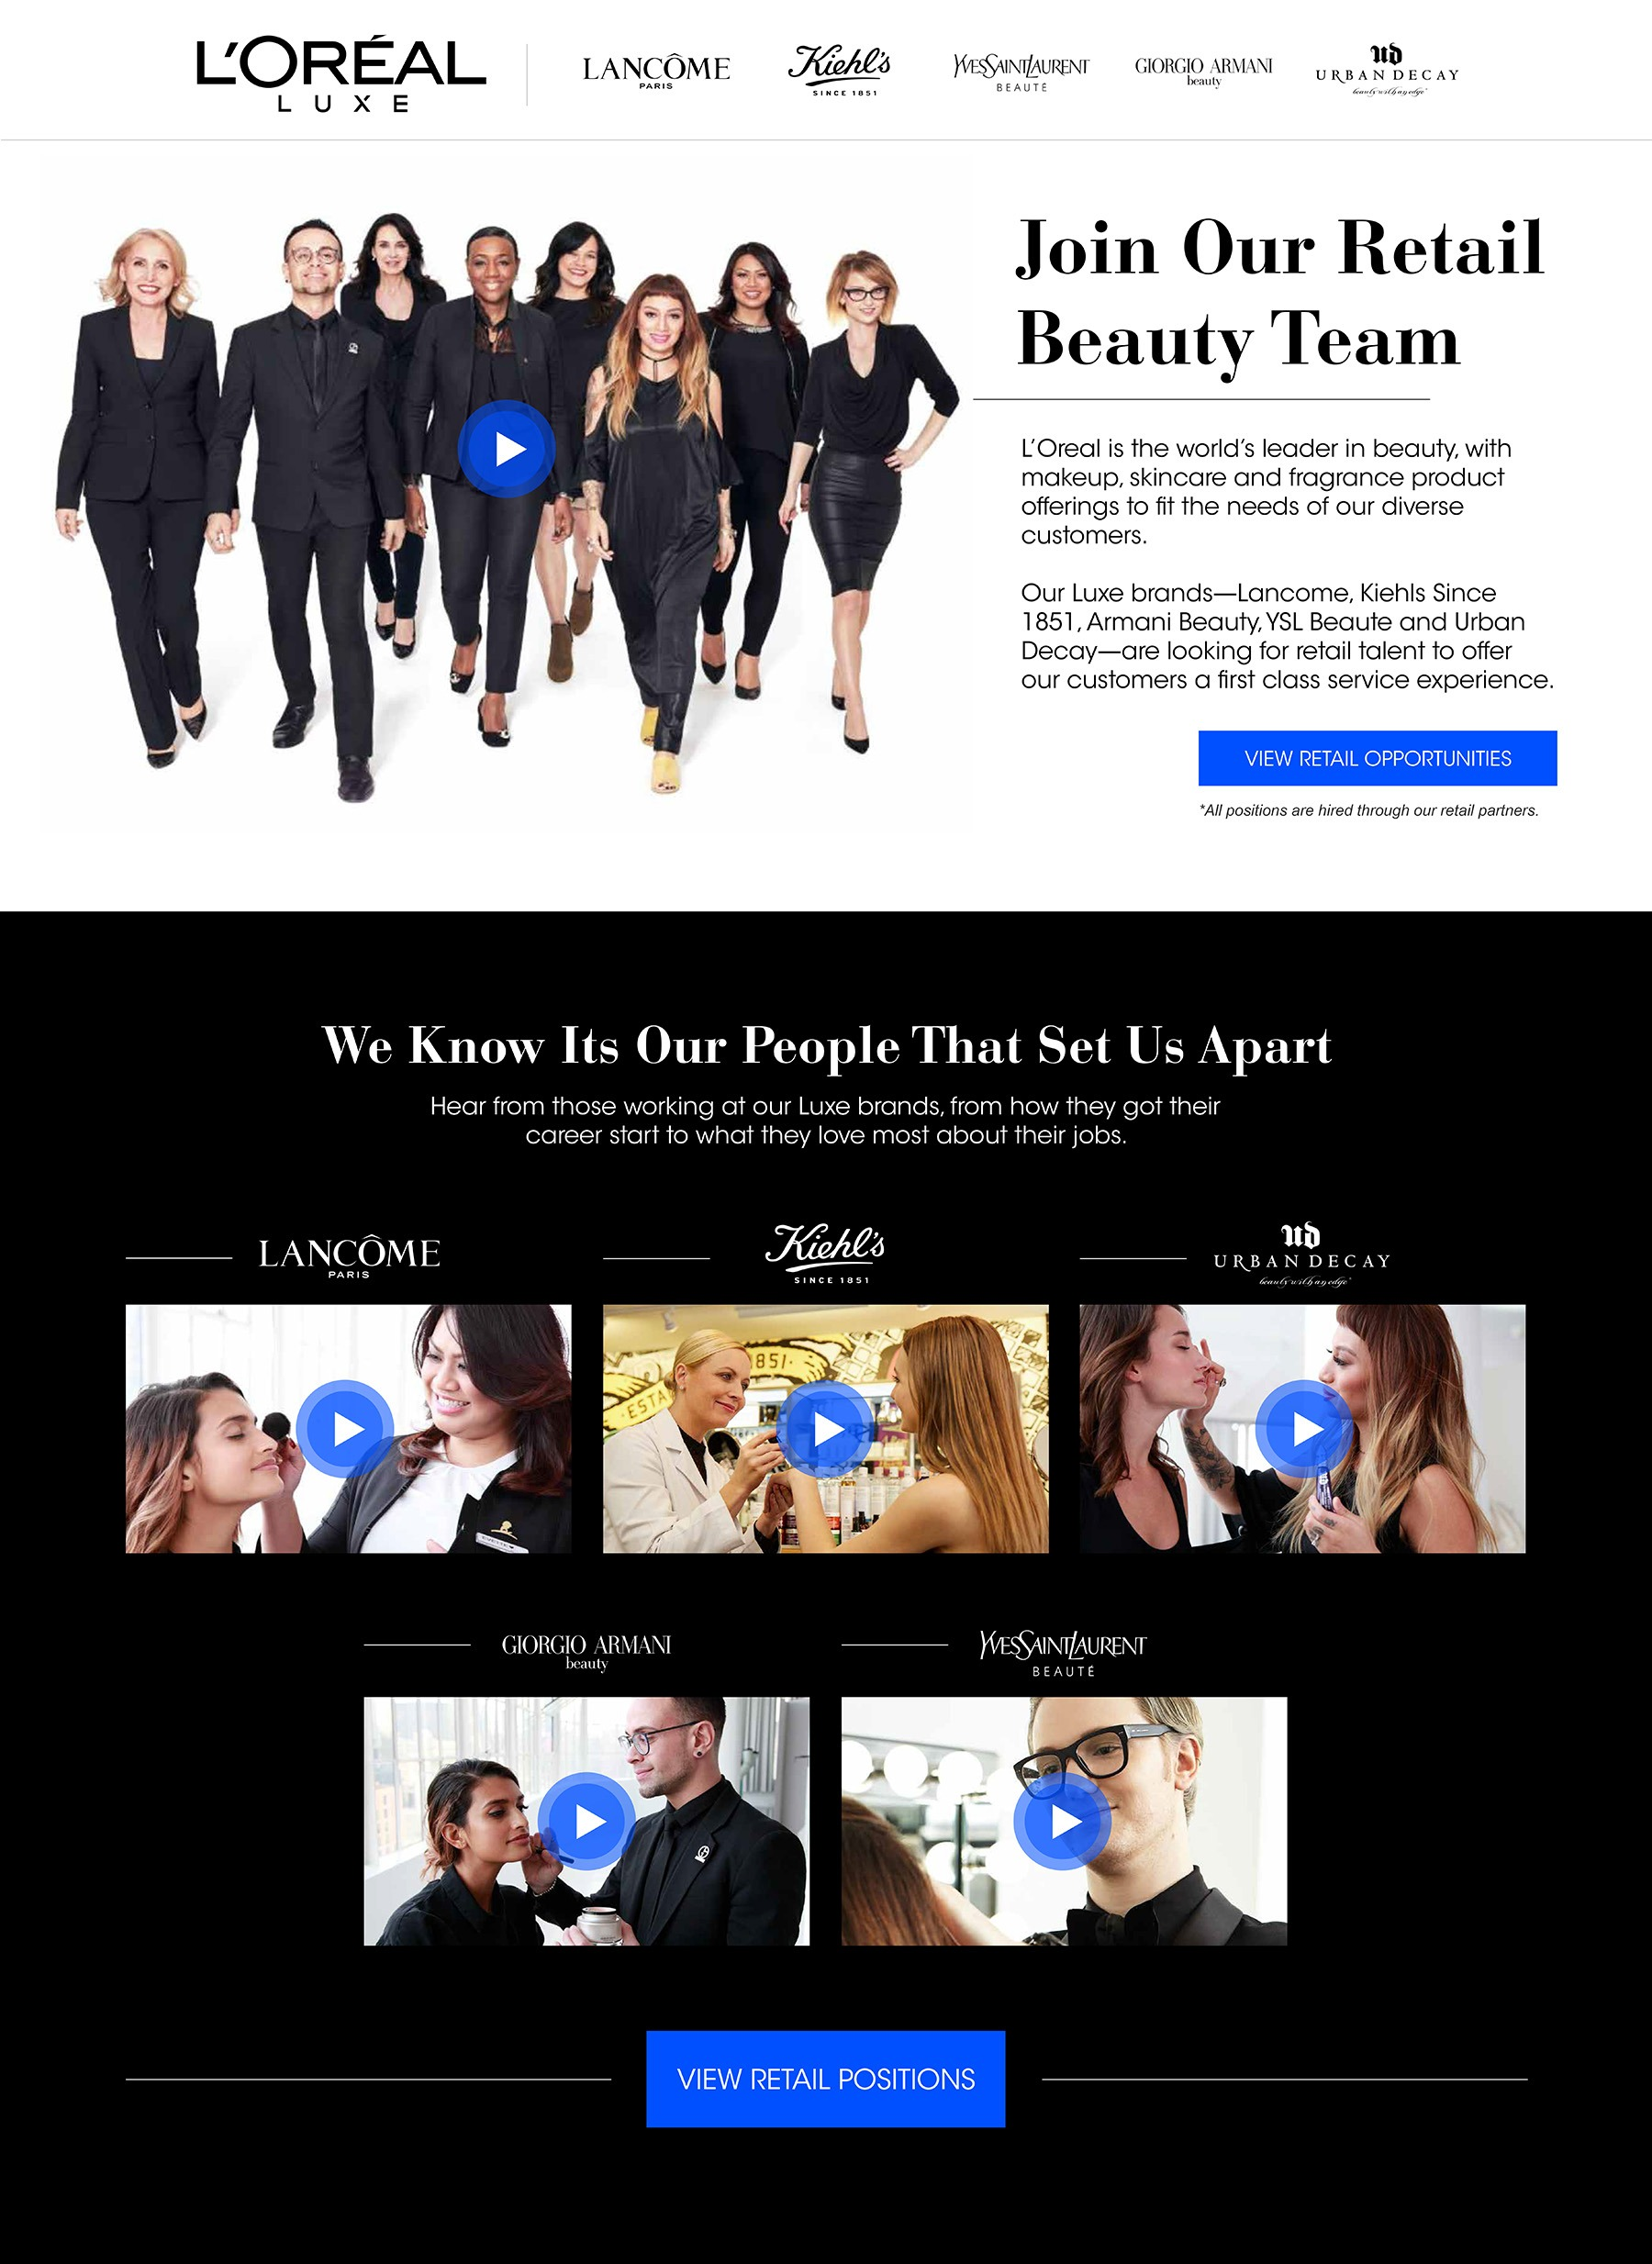 loreal luxe careers